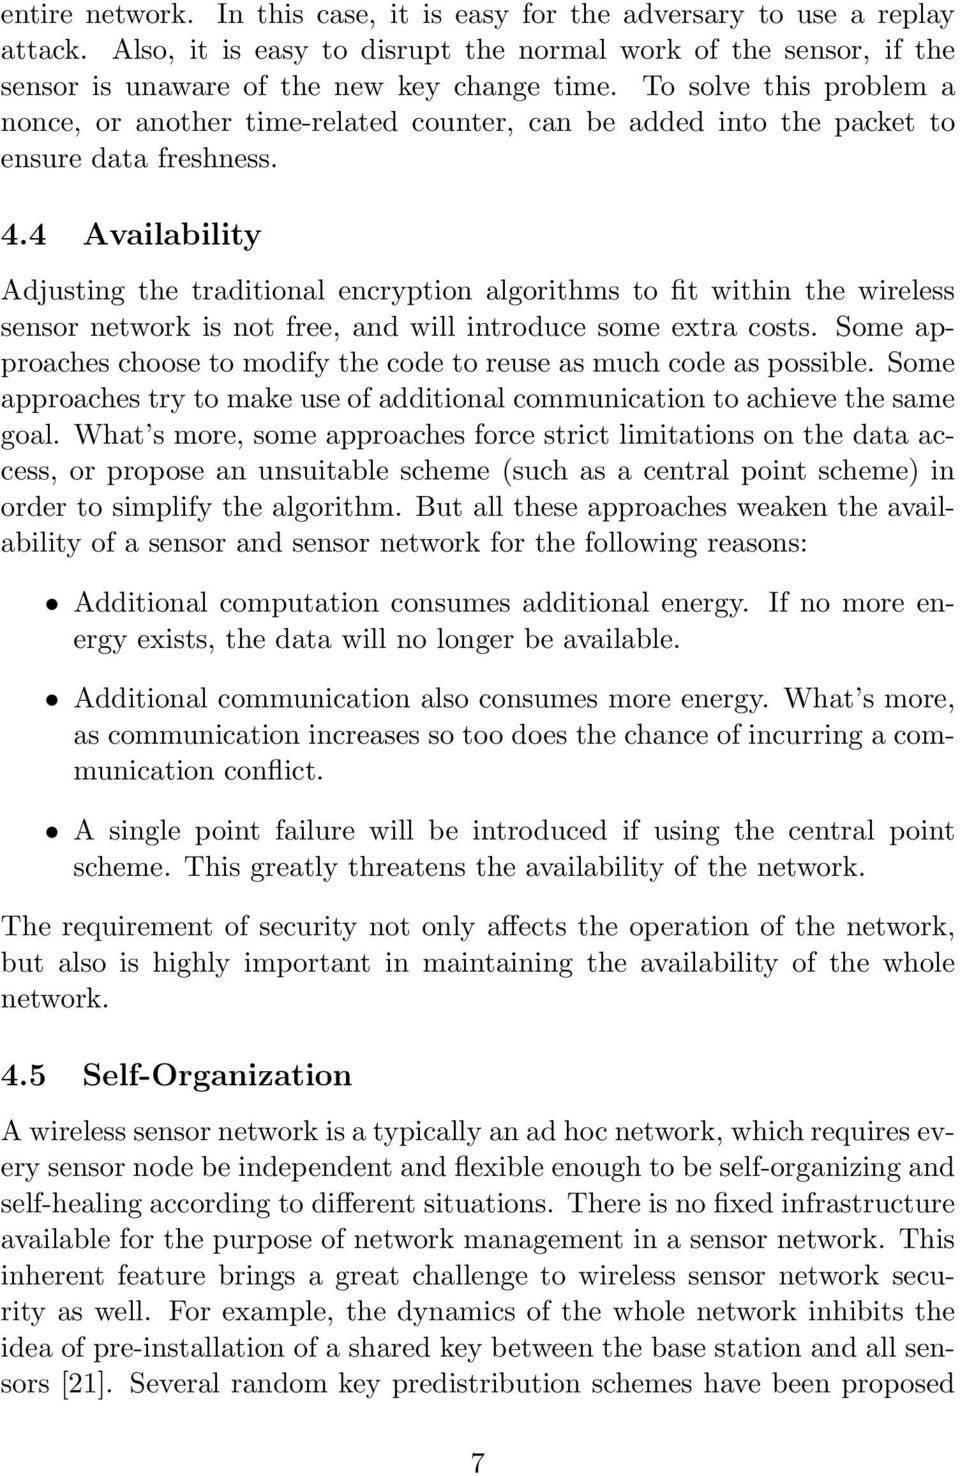 4 Availability Adjusting the traditional encryption algorithms to fit within the wireless sensor network is not free, and will introduce some extra costs.